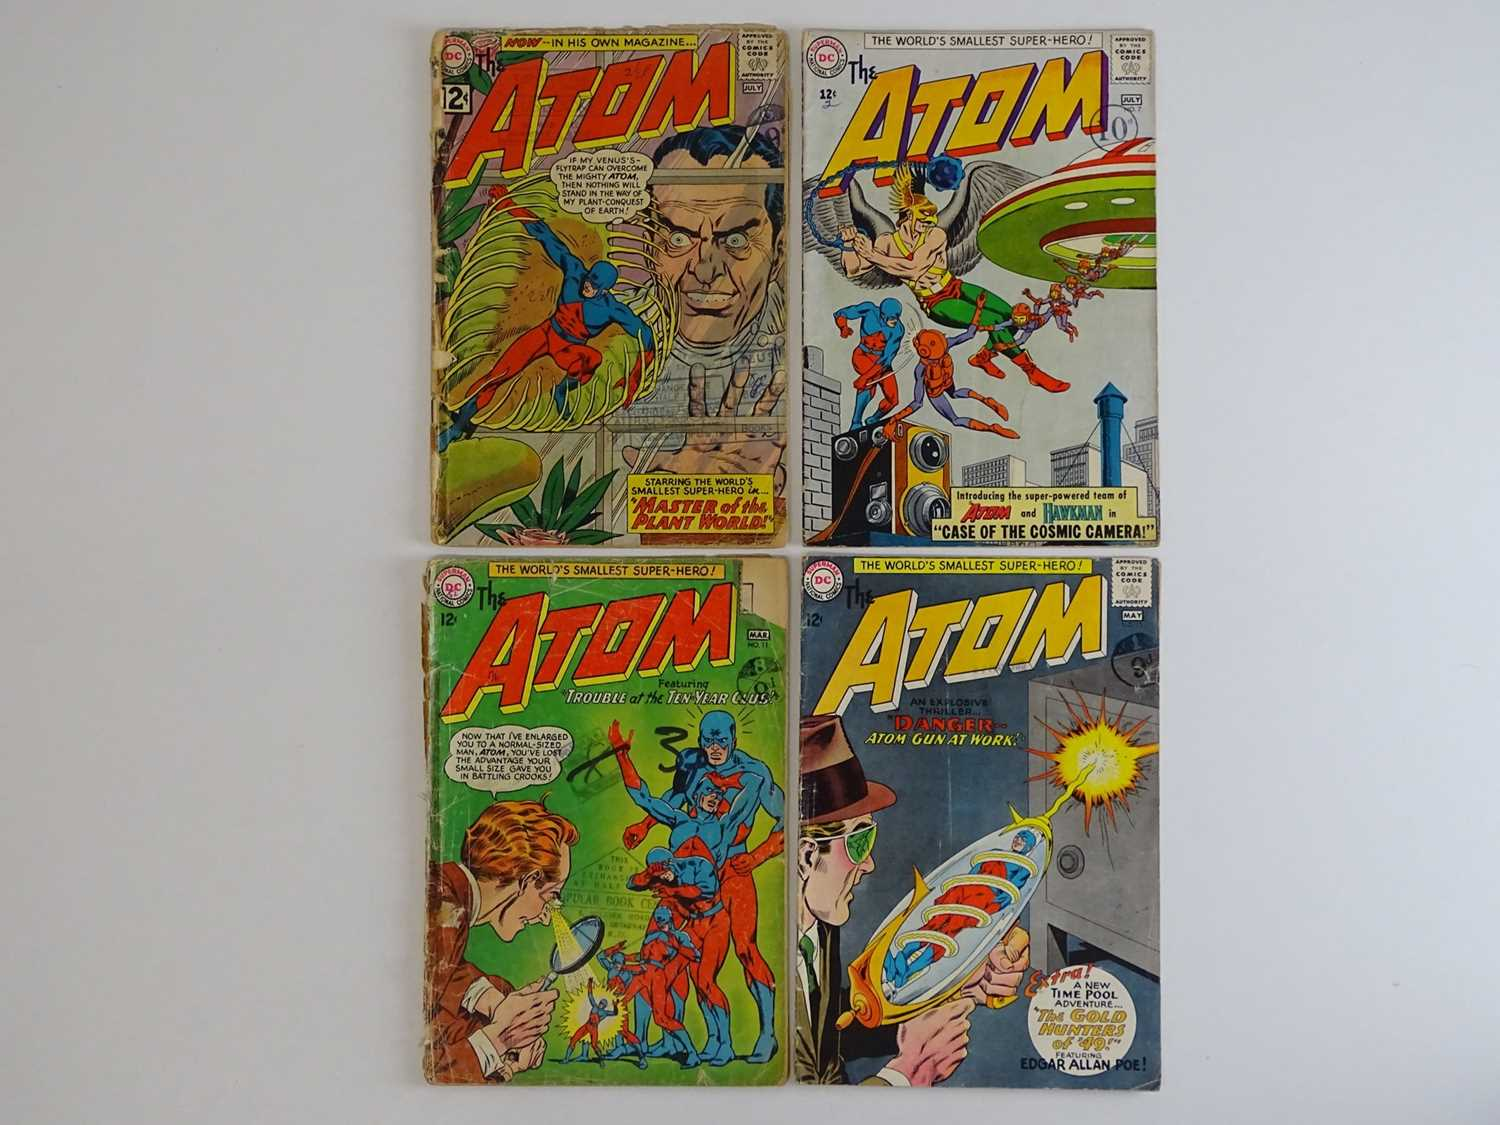 ATOM #1, 7, 11, 12 - (4 in Lot) - (1962/64 - DC - UK Cover Price) - Includes First appearance in own